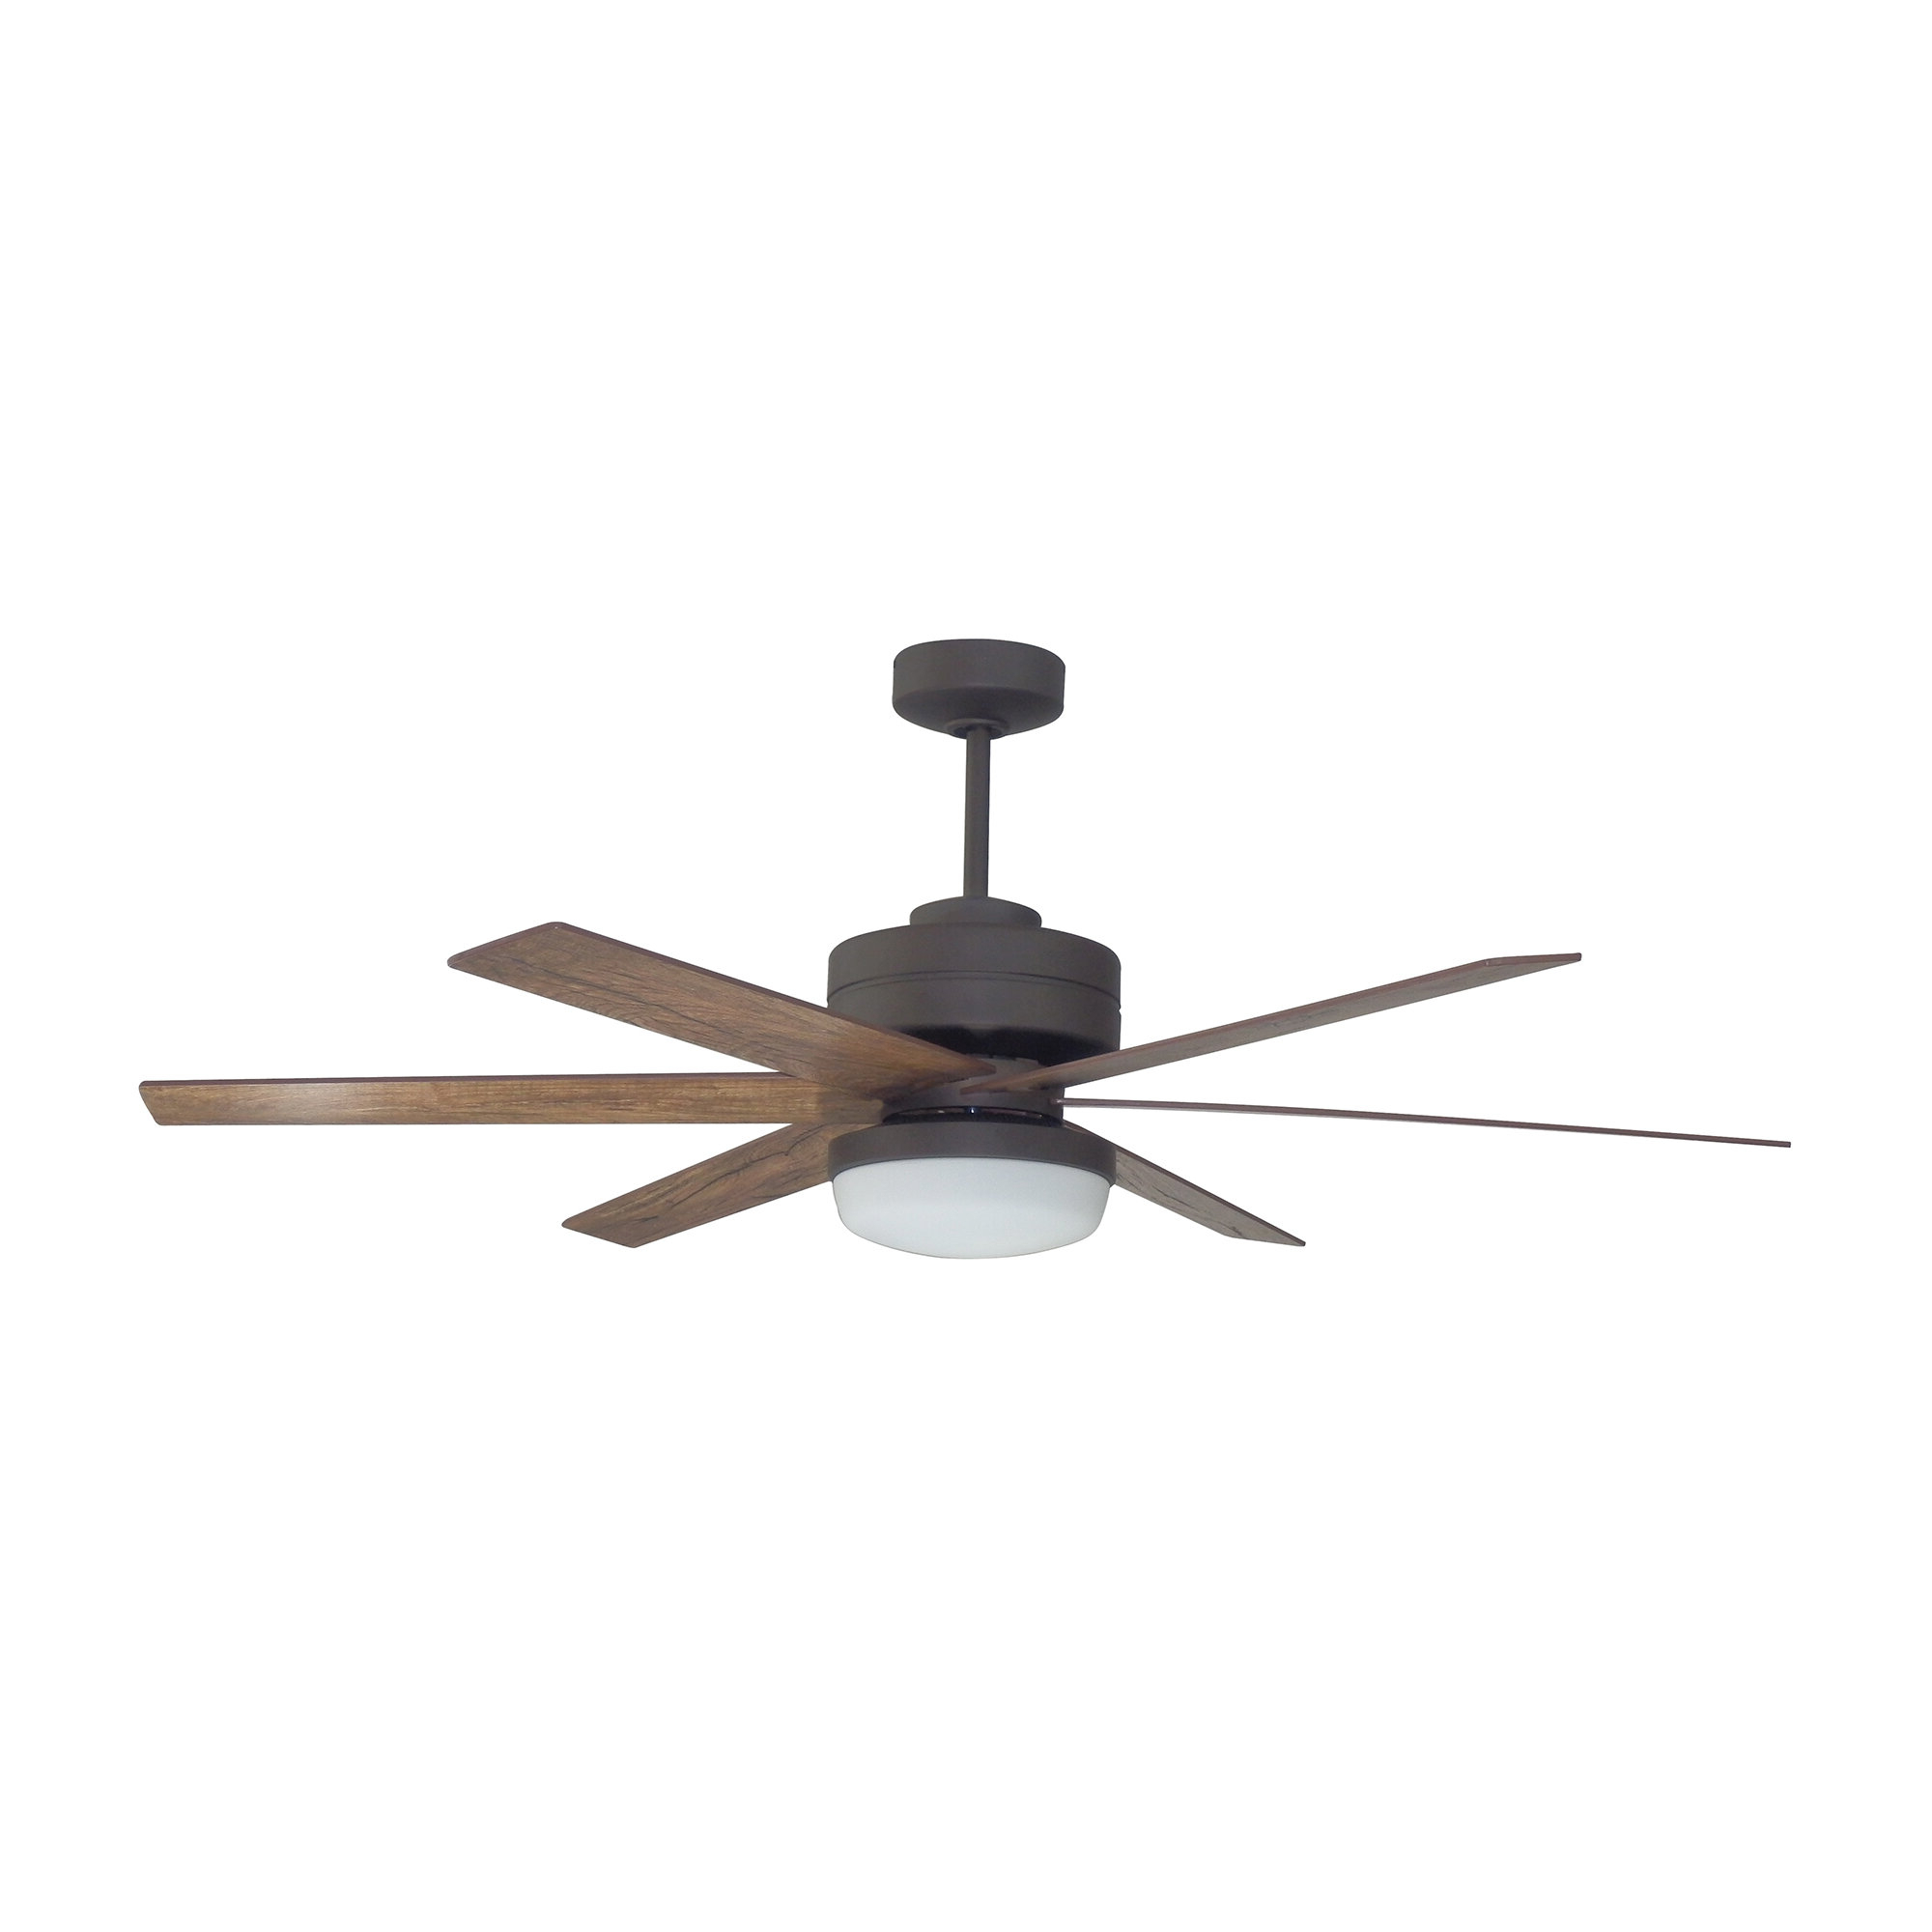 "Well Known Cillian 6 Blade Ceiling Fans Regarding 54"" Brack Dual Mount 6 Blade Ceiling Fan With Remote, Light Kit Included (View 20 of 20)"